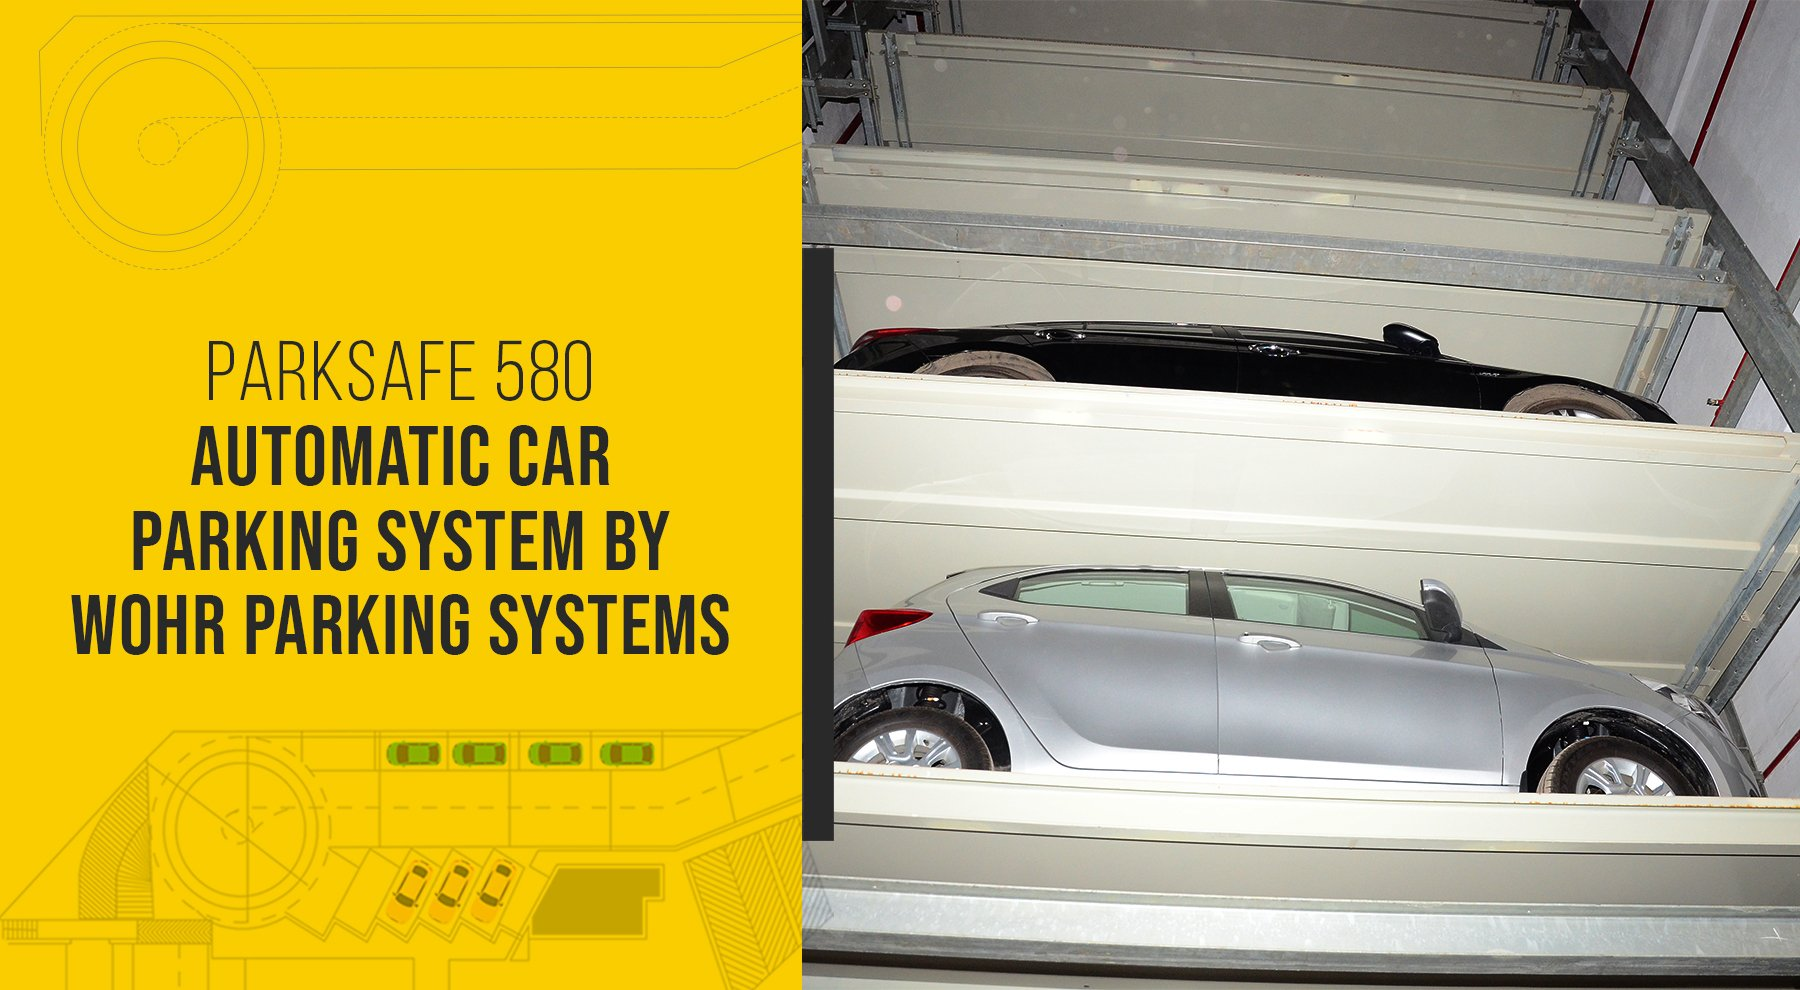 PARKSAFE 580 AUTOMATIC CAR PARKING SYSTEM BY WOHR PARKING SYSTEMS